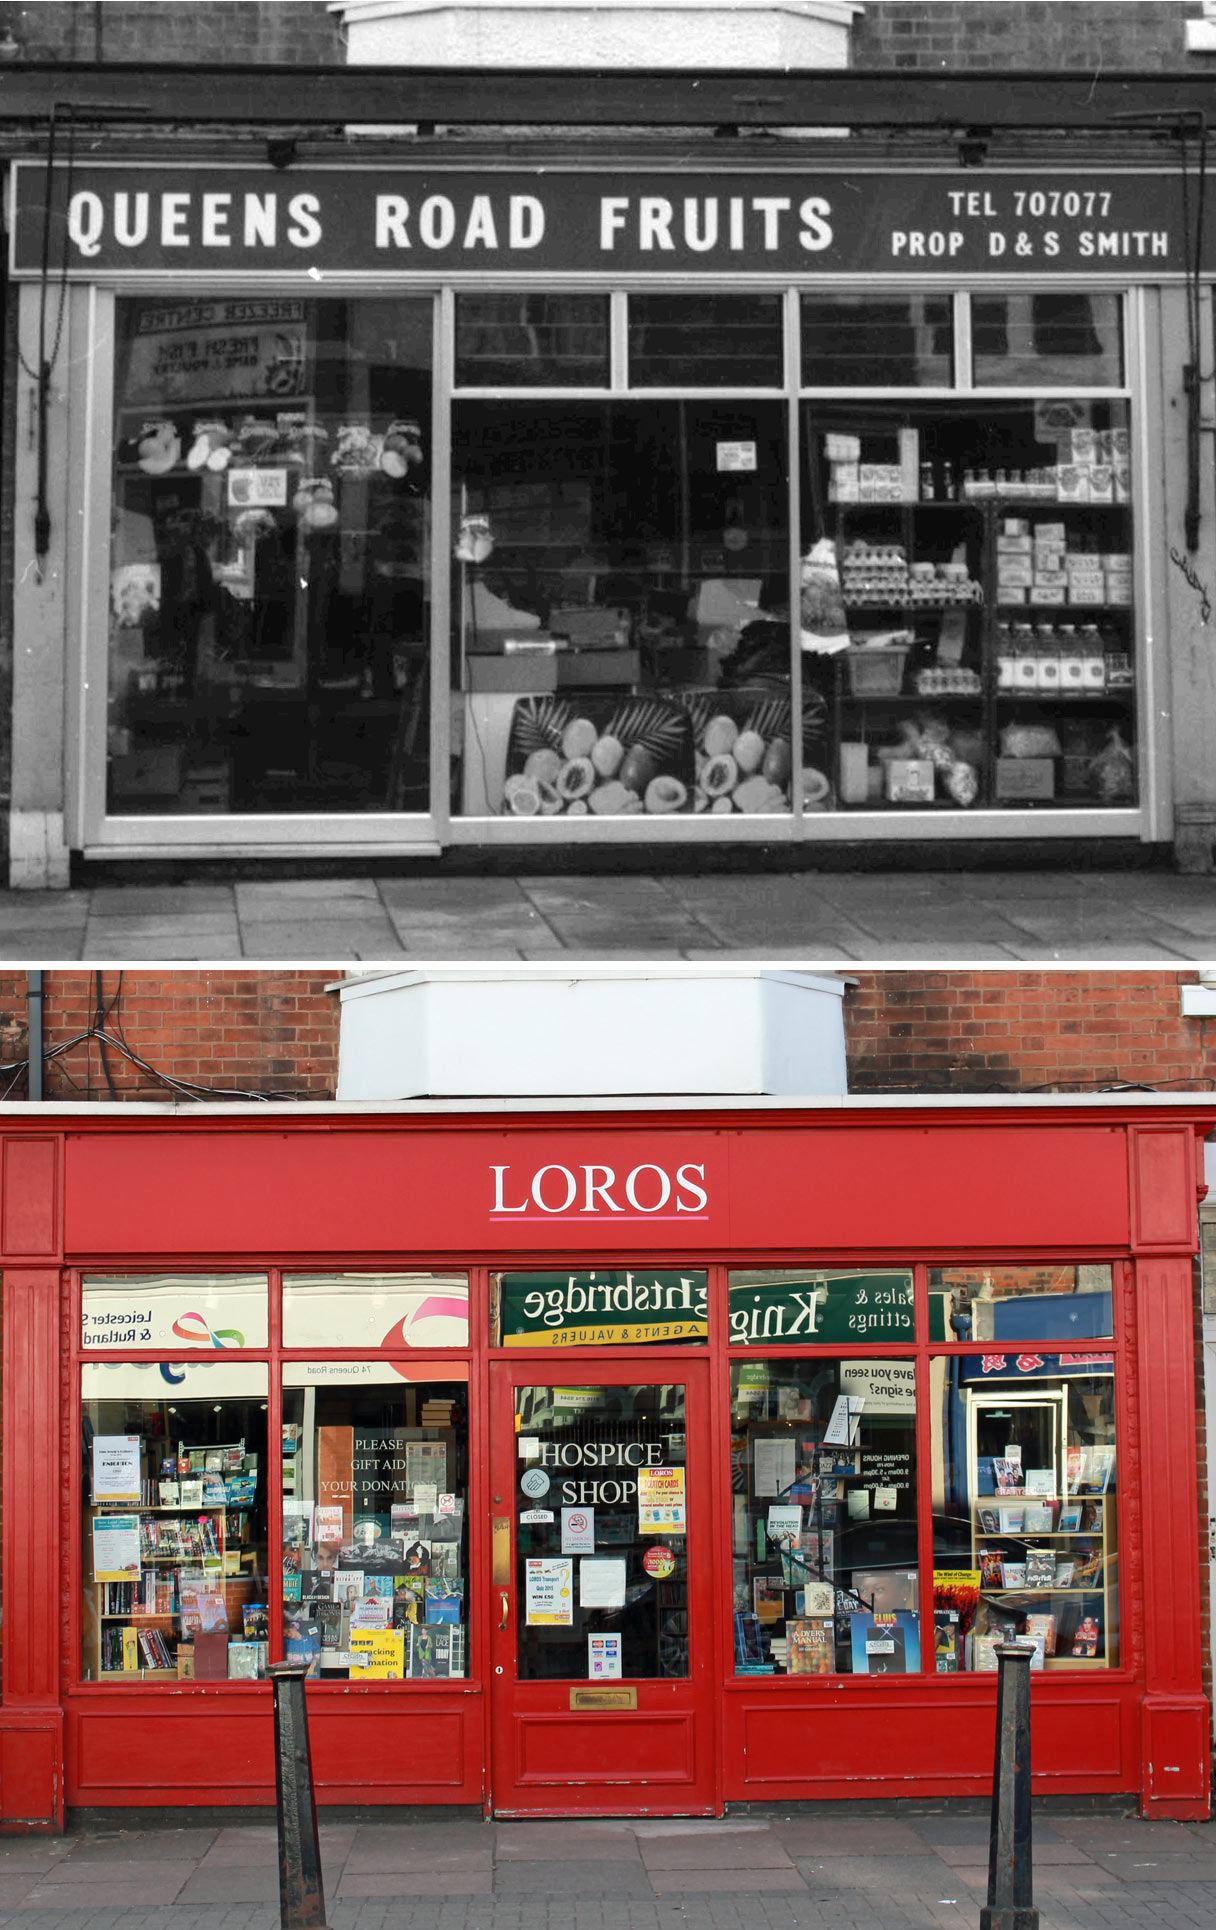 loros-queens-road-fruits